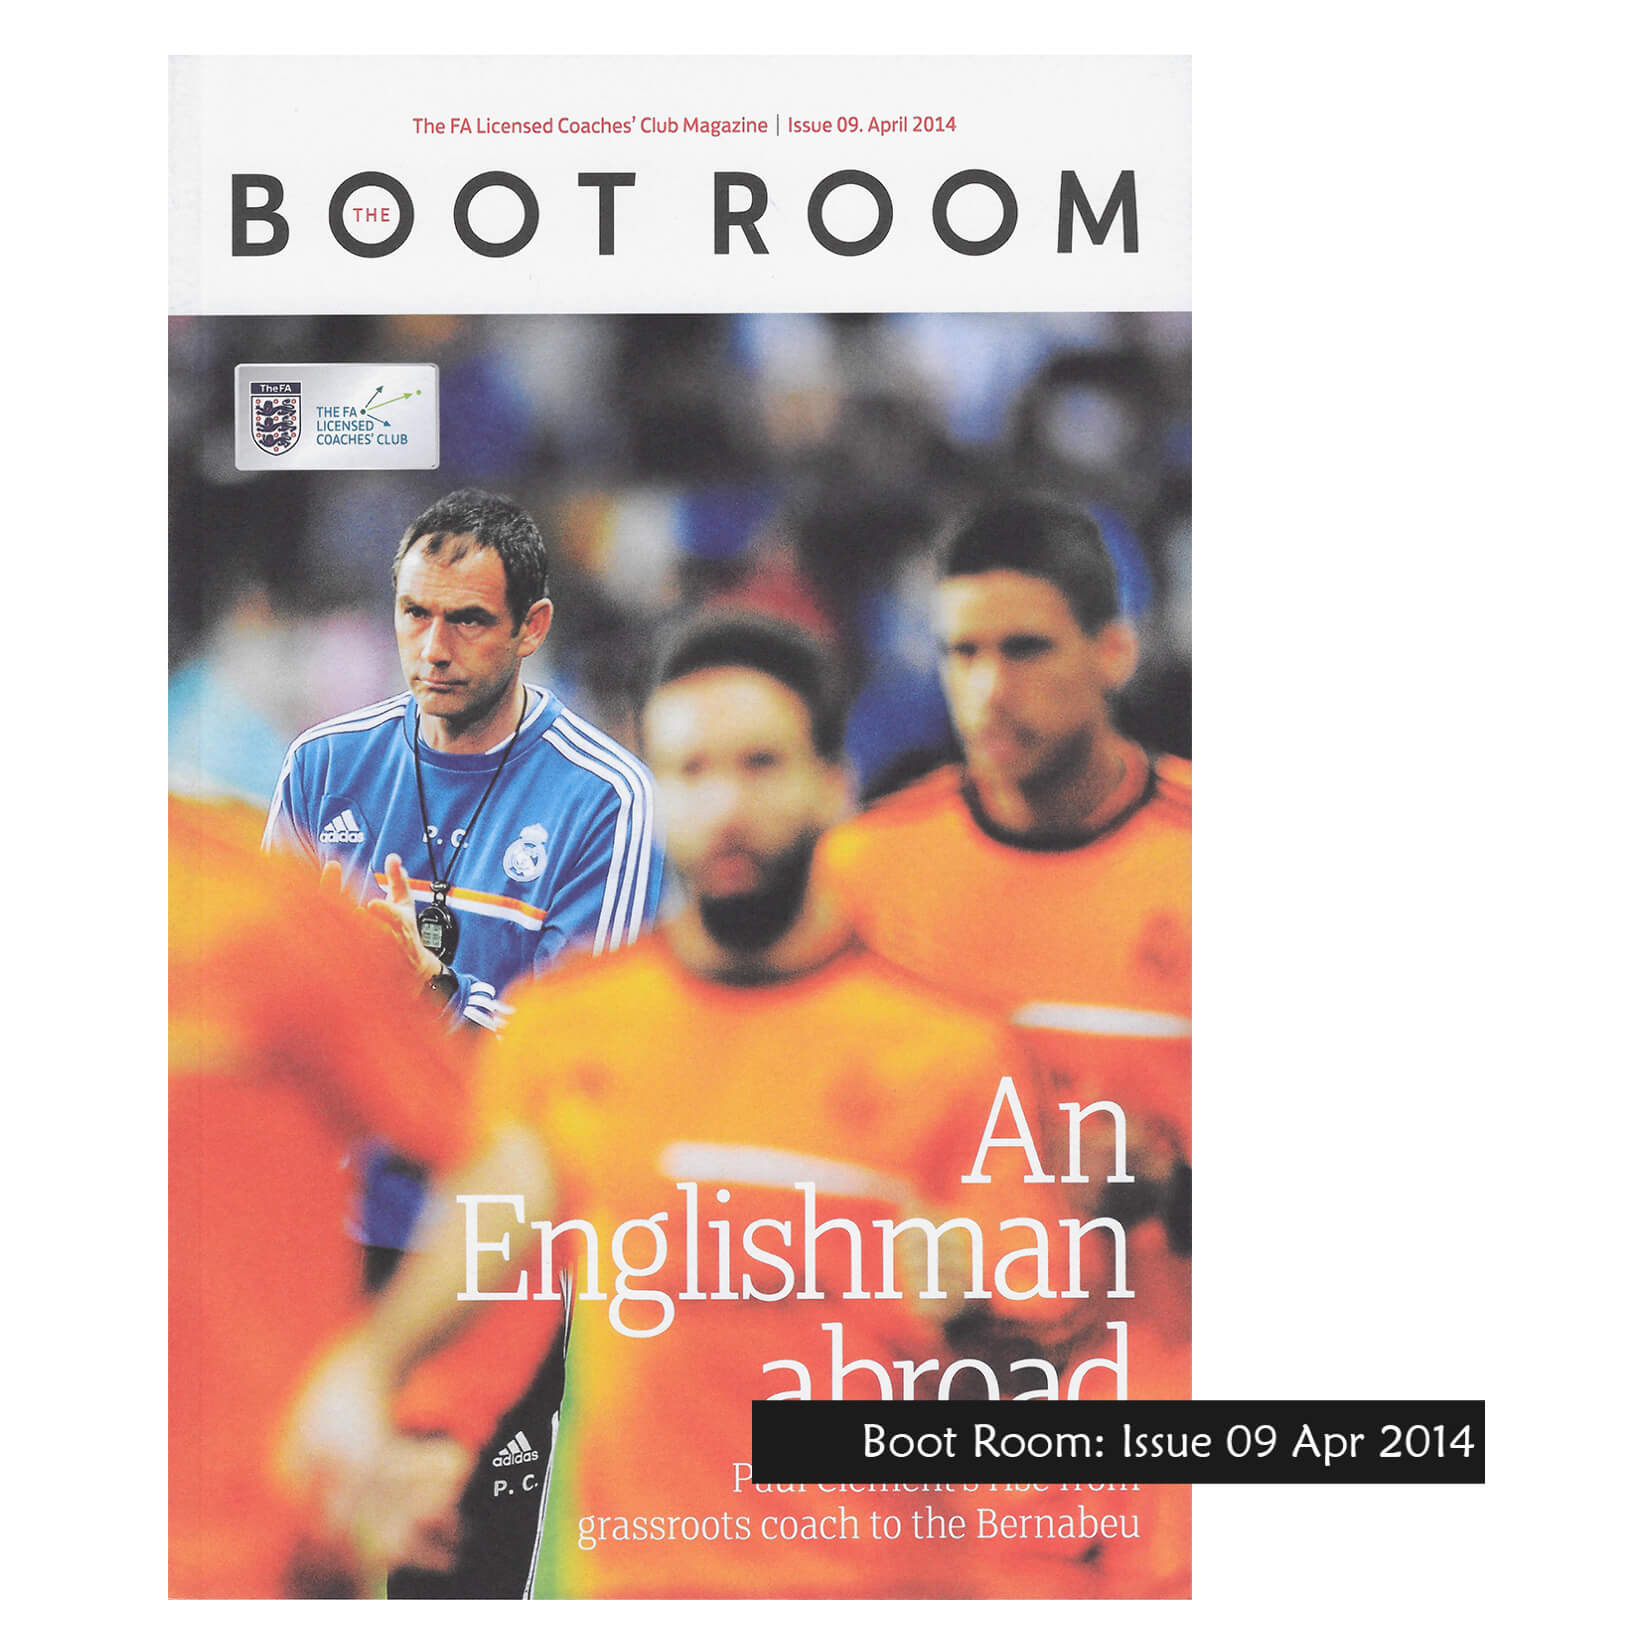 FA Boot Room Issue 09: An Englishman Abroad - Magazine Misc-1-2090-4436